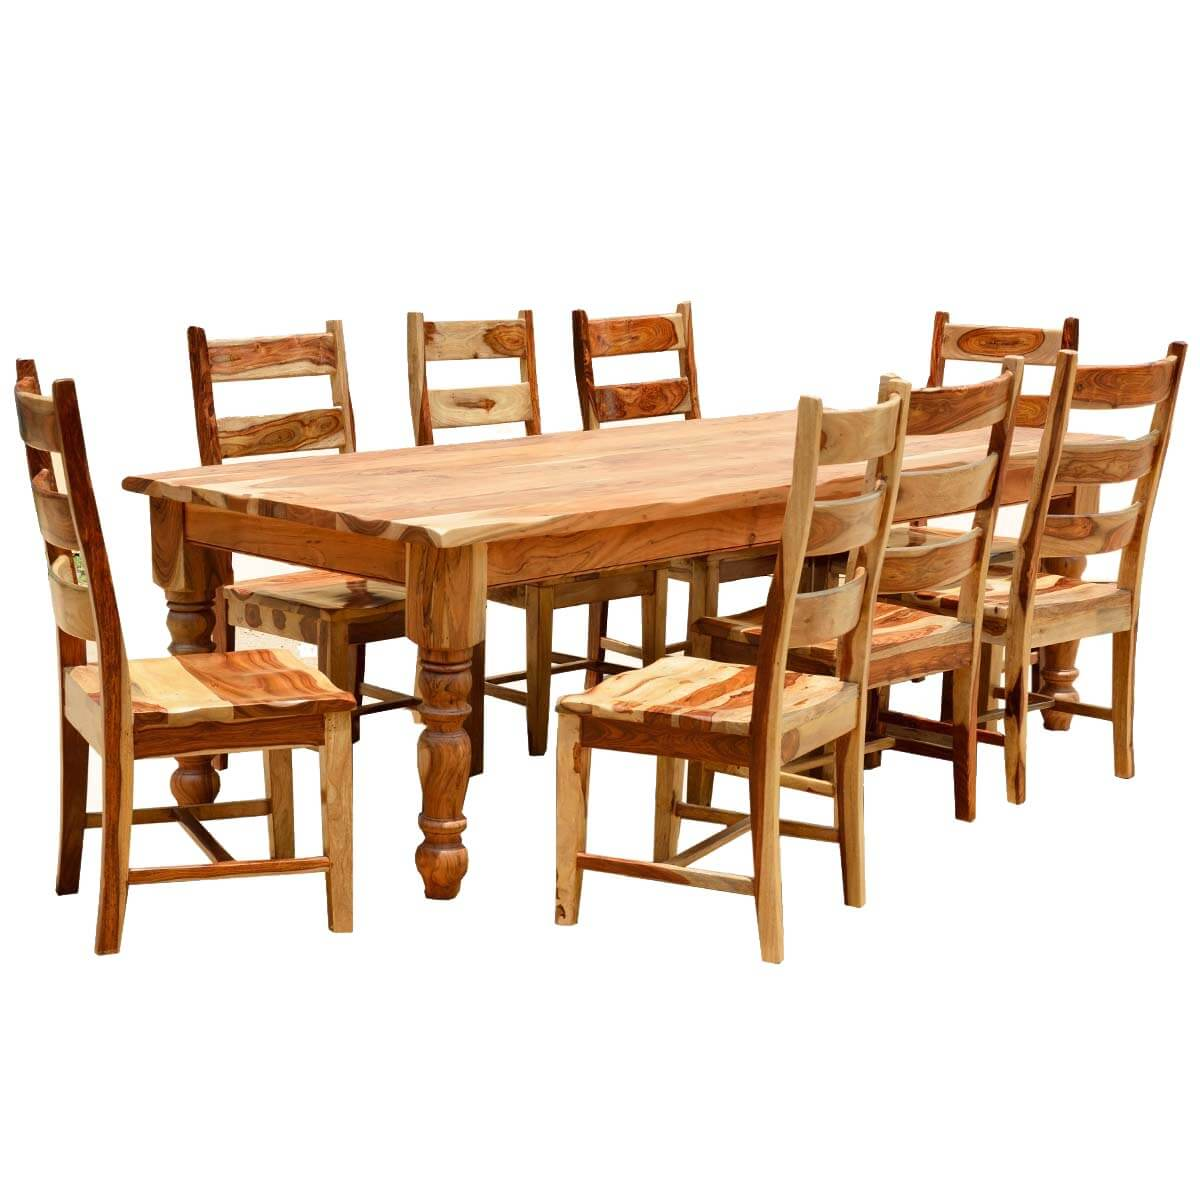 Rustic solid wood farmhouse dining room table chair set for Wood dining table set